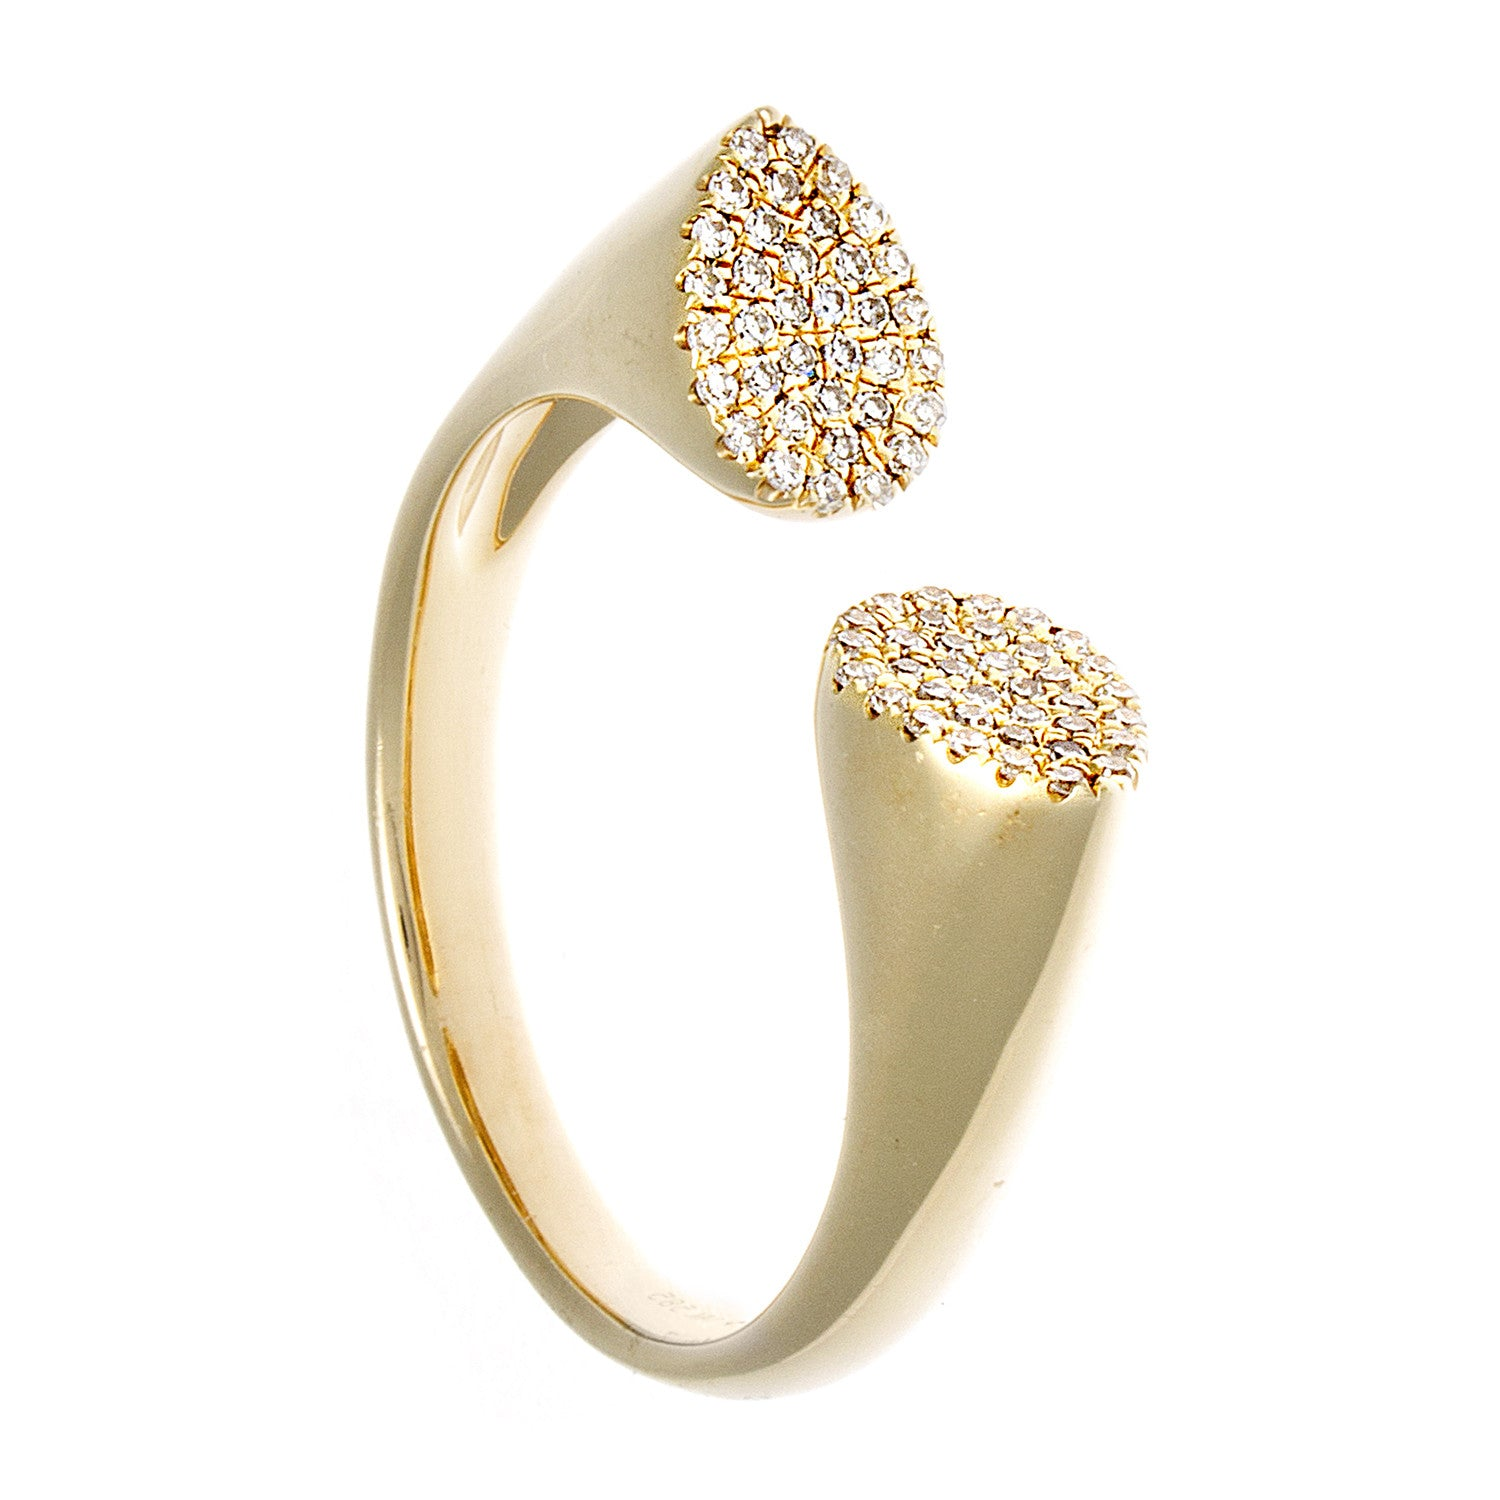 Diamond & 14K Yellow Gold Chunky Horseshoe Ring - SOLD/CAN BE SPECIAL ORDERED WITH 4-6 WEEKS DELIVERY TIME FRAME